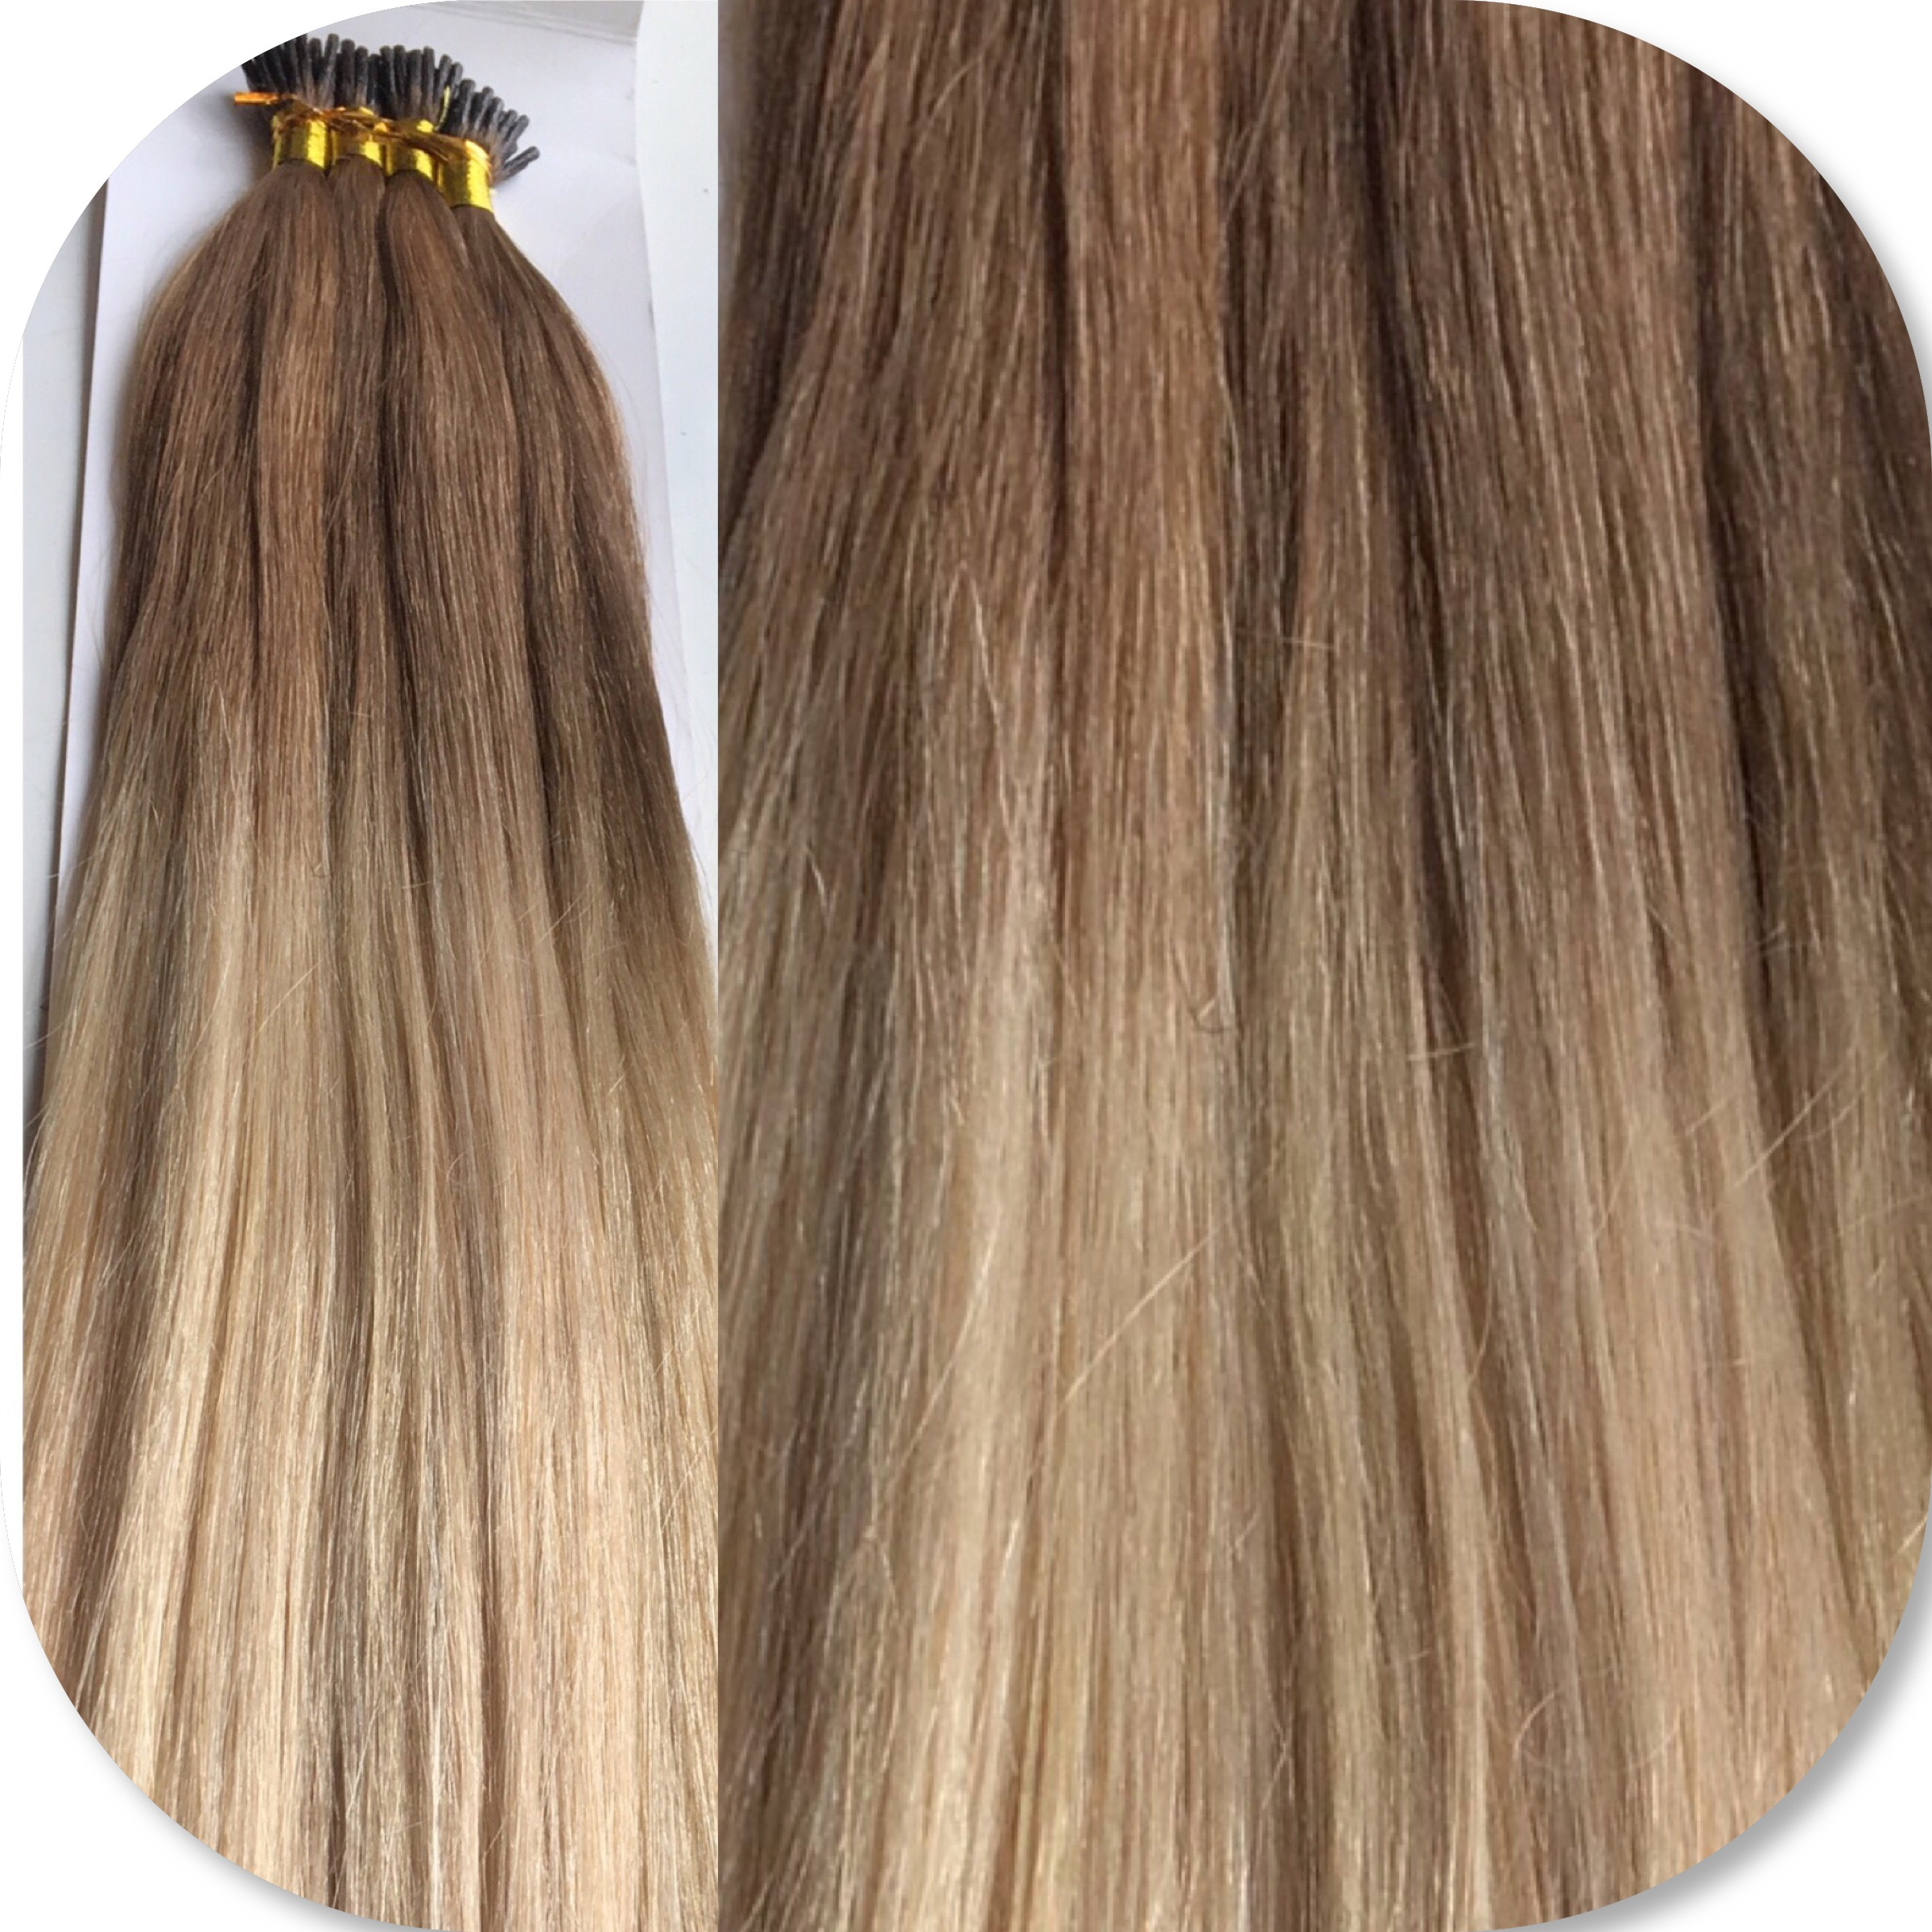 822 Ombre 20 Itip Virgin Remy Range Mooi Hair Extensions